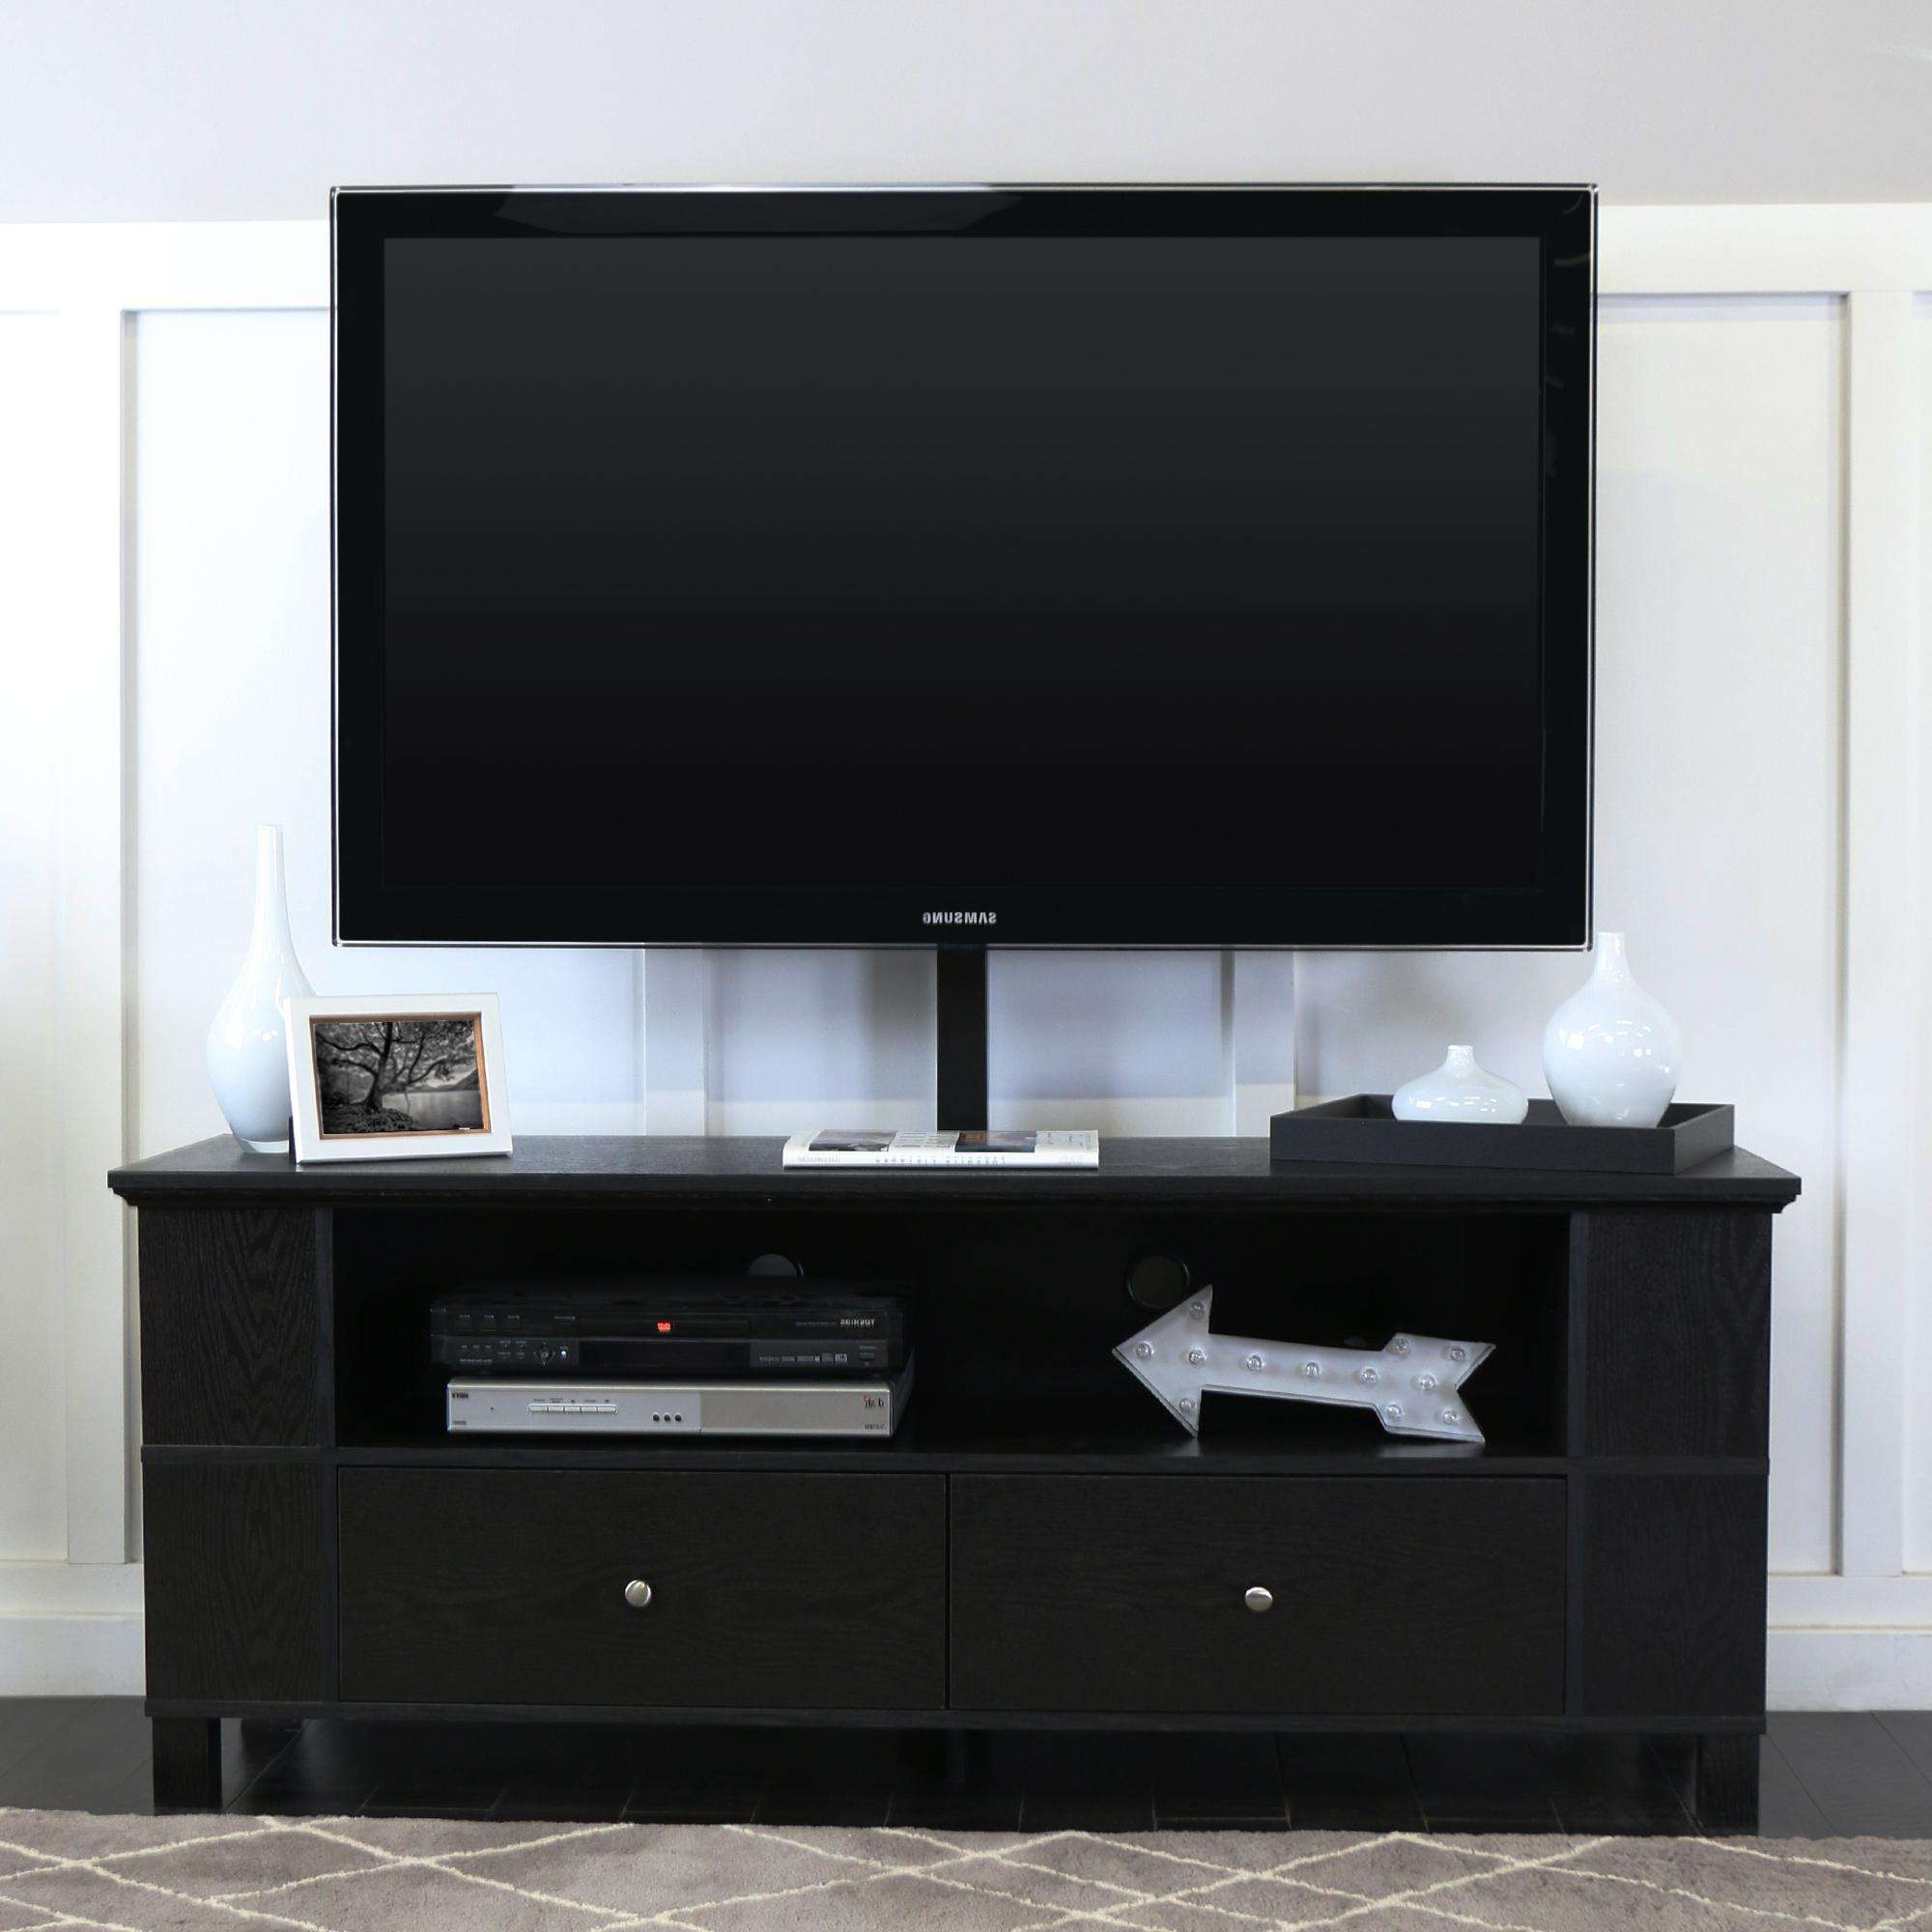 Furniture: Awesome Cymax Tv Stands With Cool Concepts Design Regarding Corner 60 Inch Tv Stands (View 6 of 15)